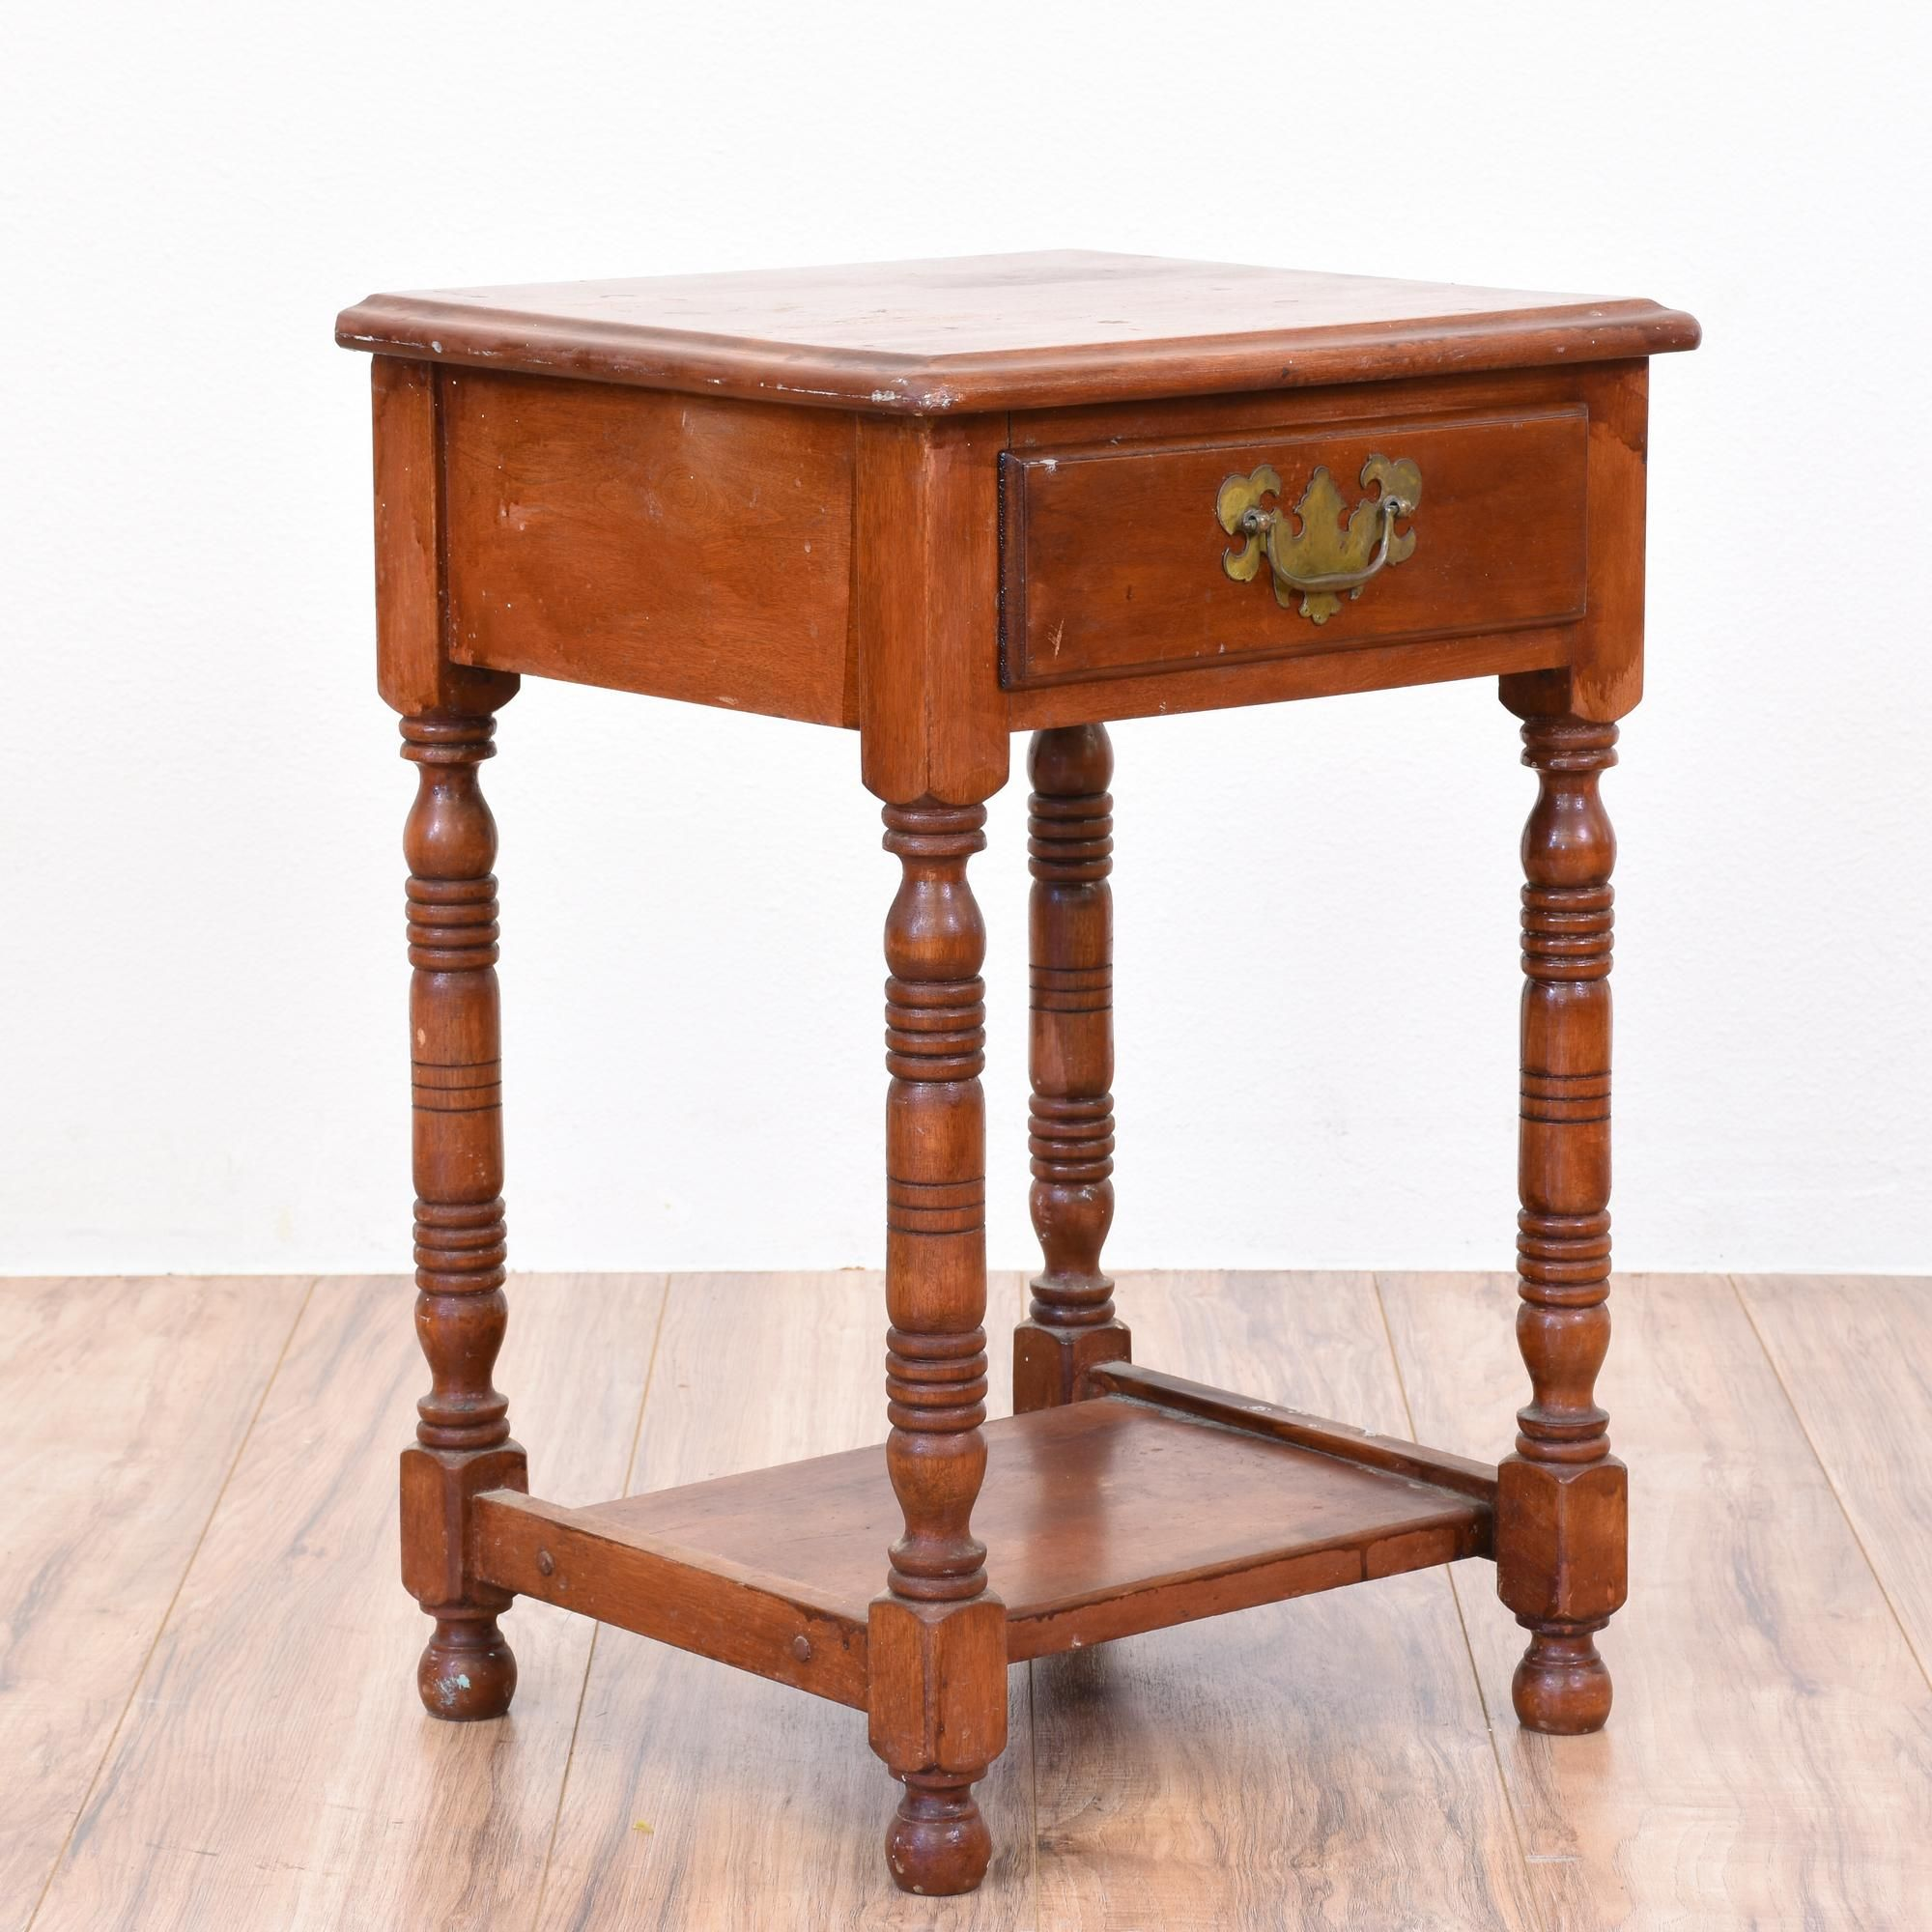 Delightful This 2 Tiered Colonial Nightstand Is Featured In A Solid Wood With A Glossy  Rustic Cherry Finish. This End Table Is In Great Condition With 1 Drawer,  ...